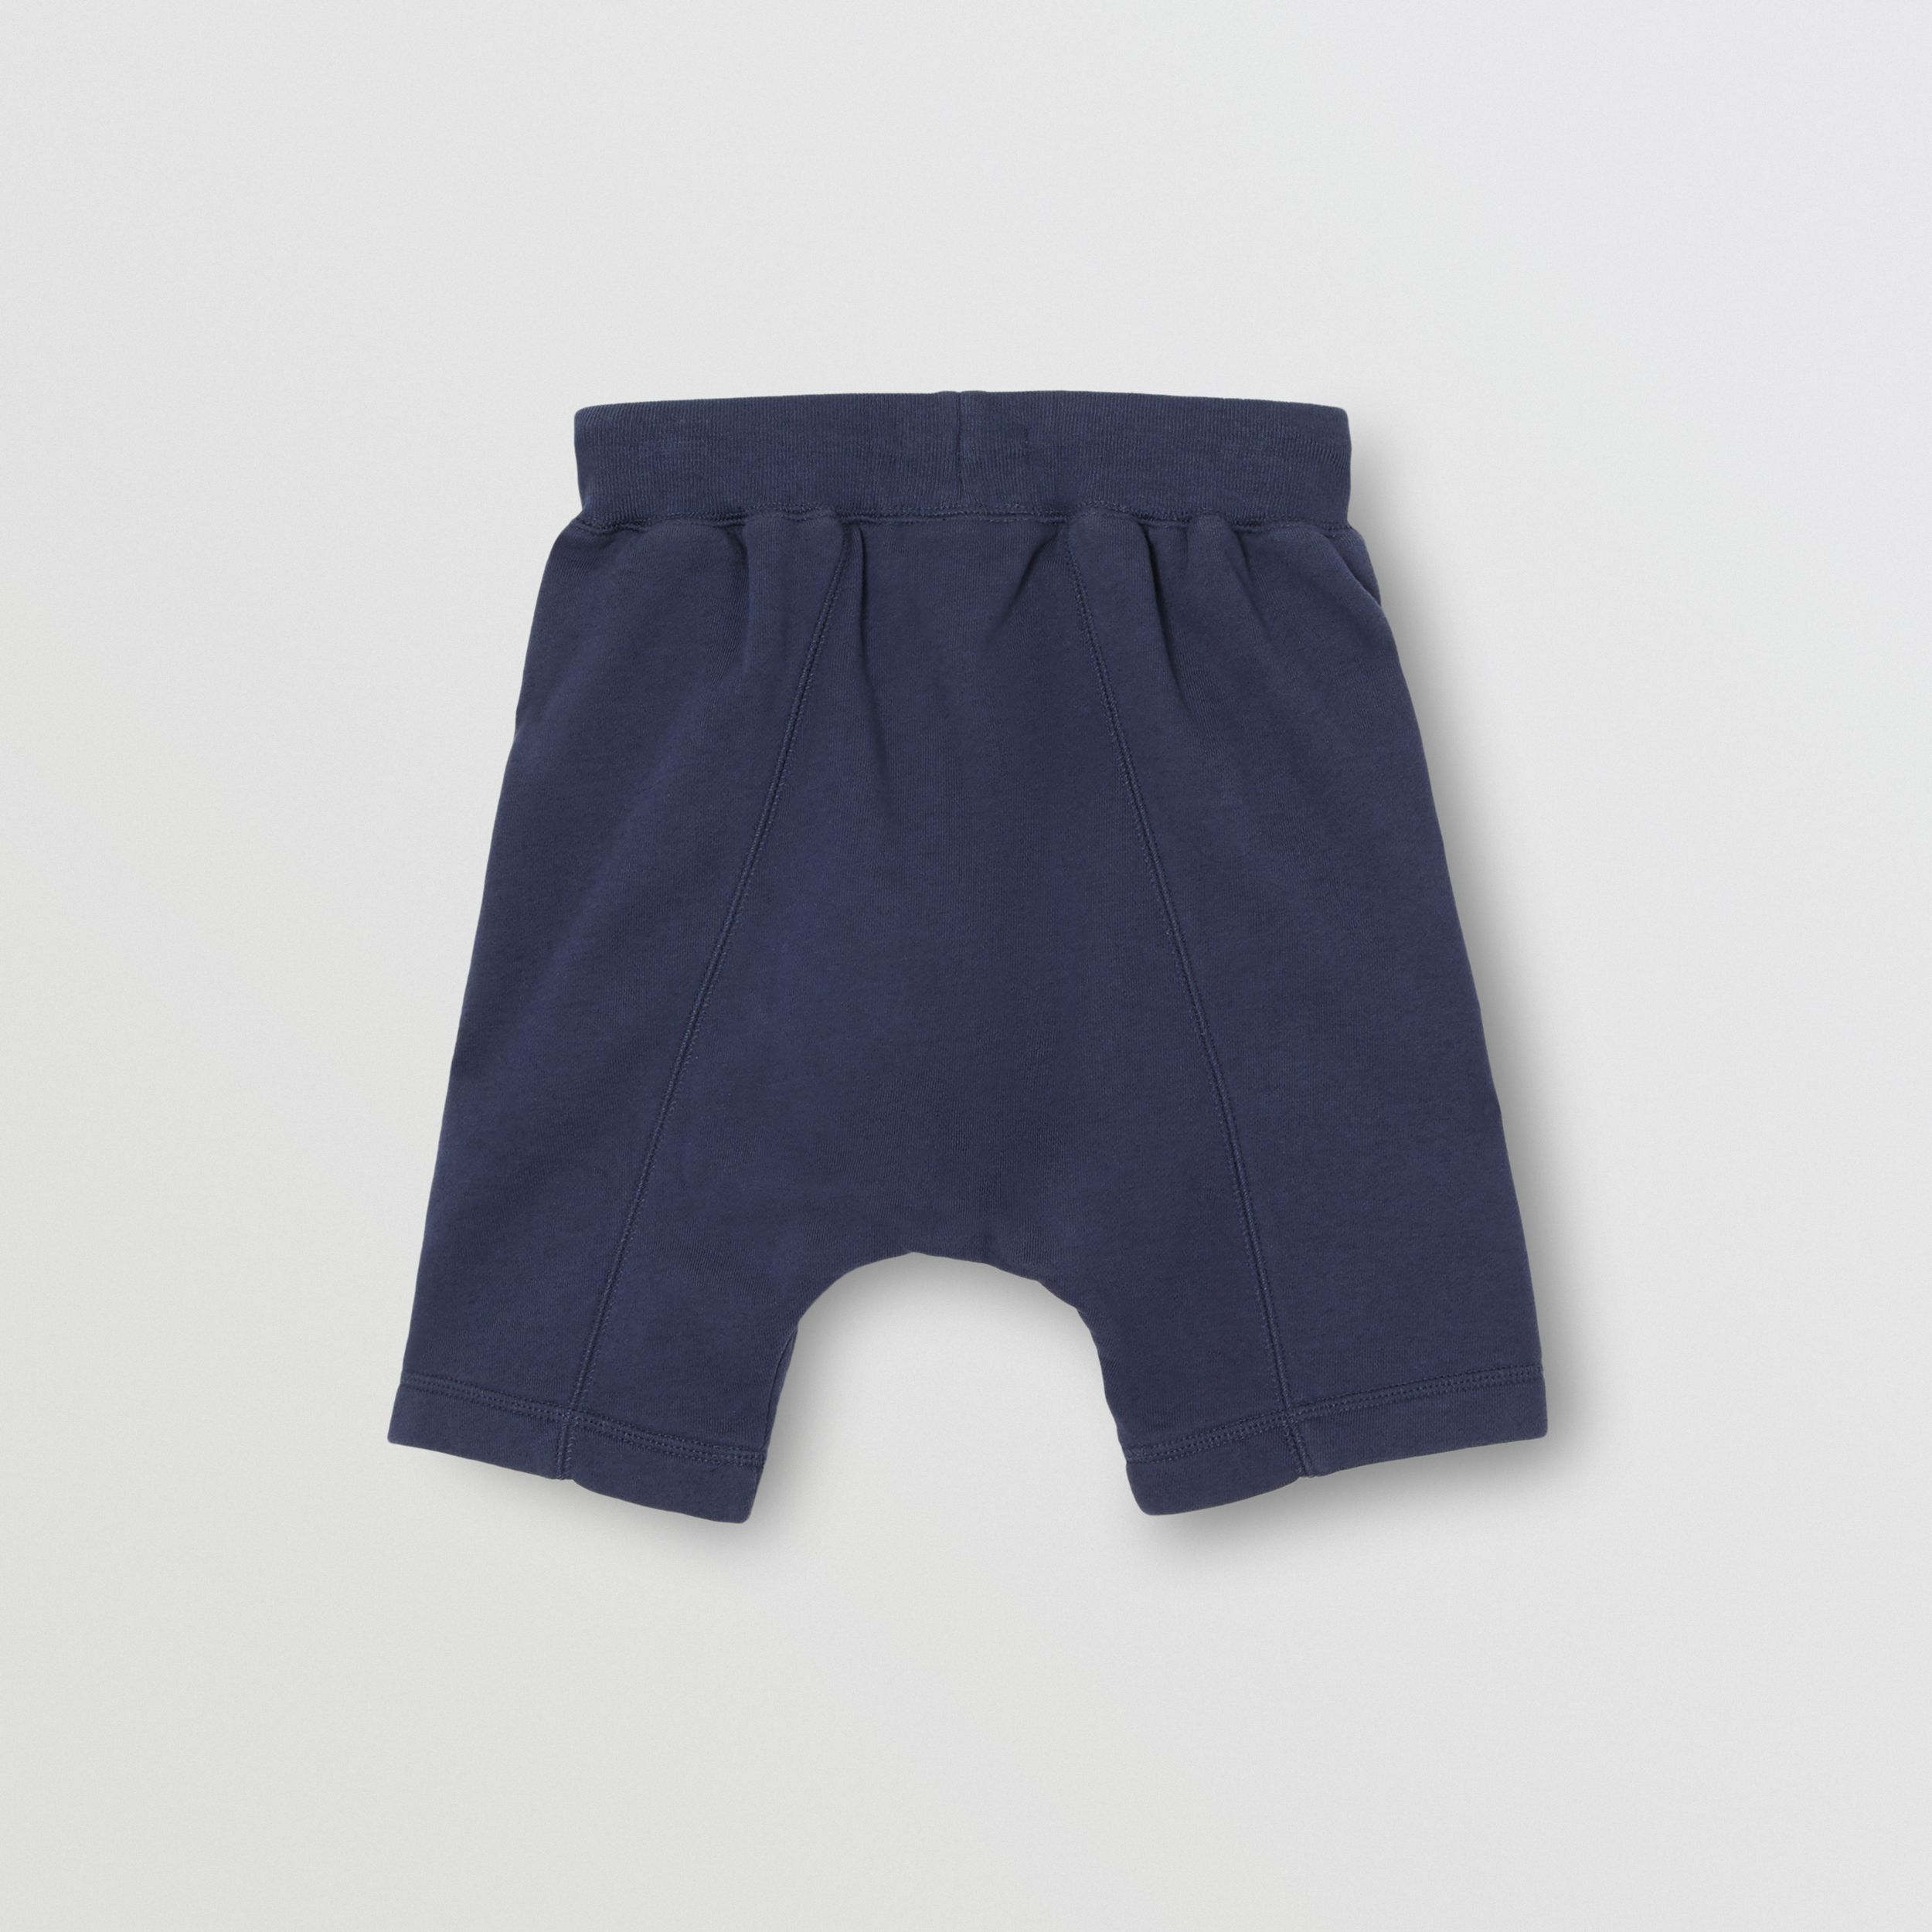 Kingdom Motif Cotton Drawcord Shorts in Slate Blue Melange | Burberry - 4